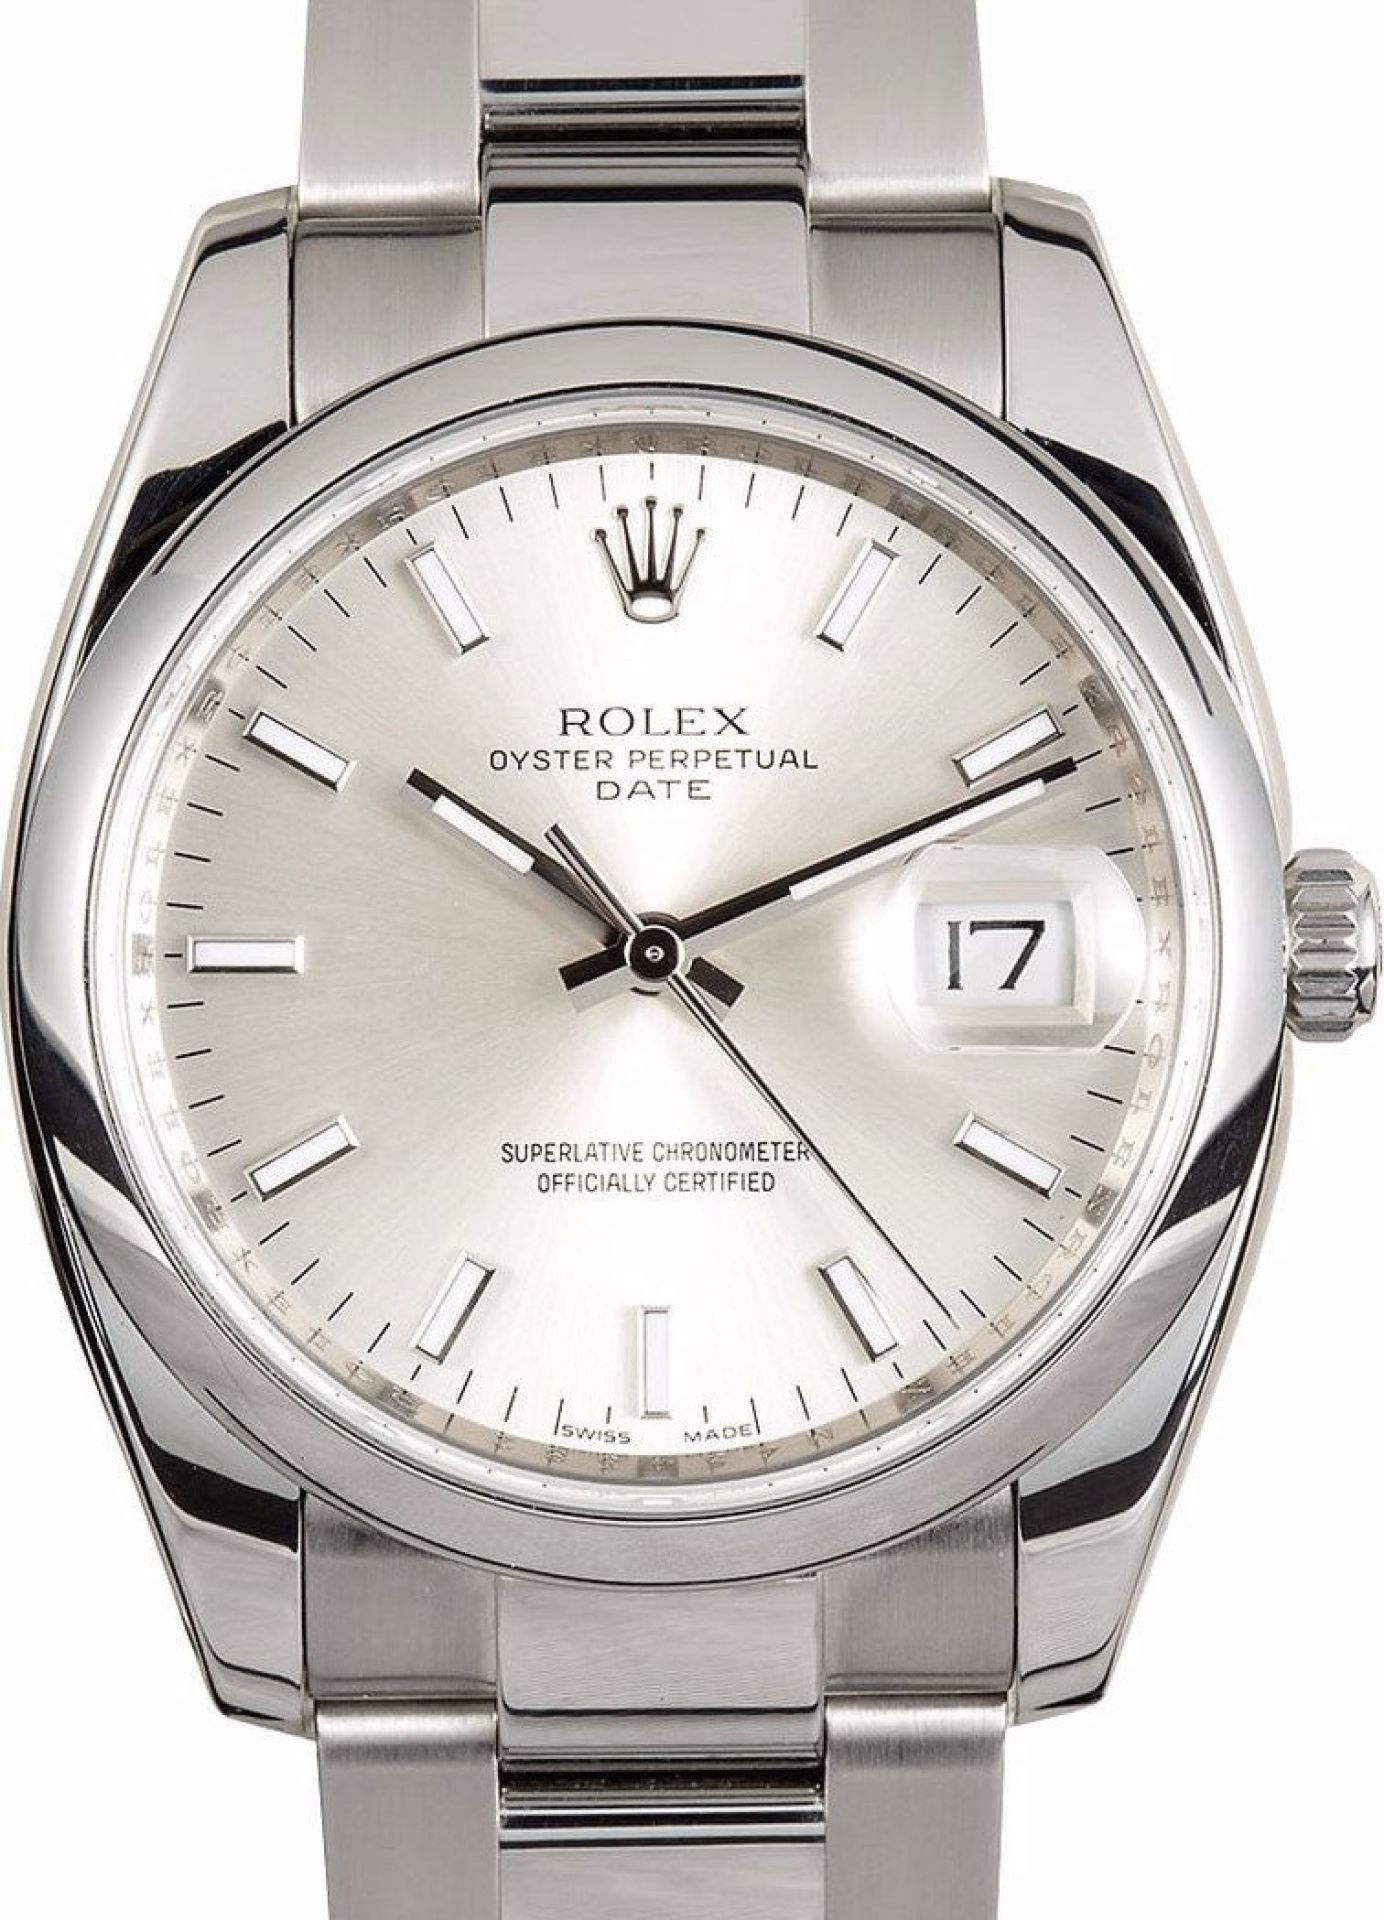 Rolex Oyster Perpetual Date Watch SILVER DIAL